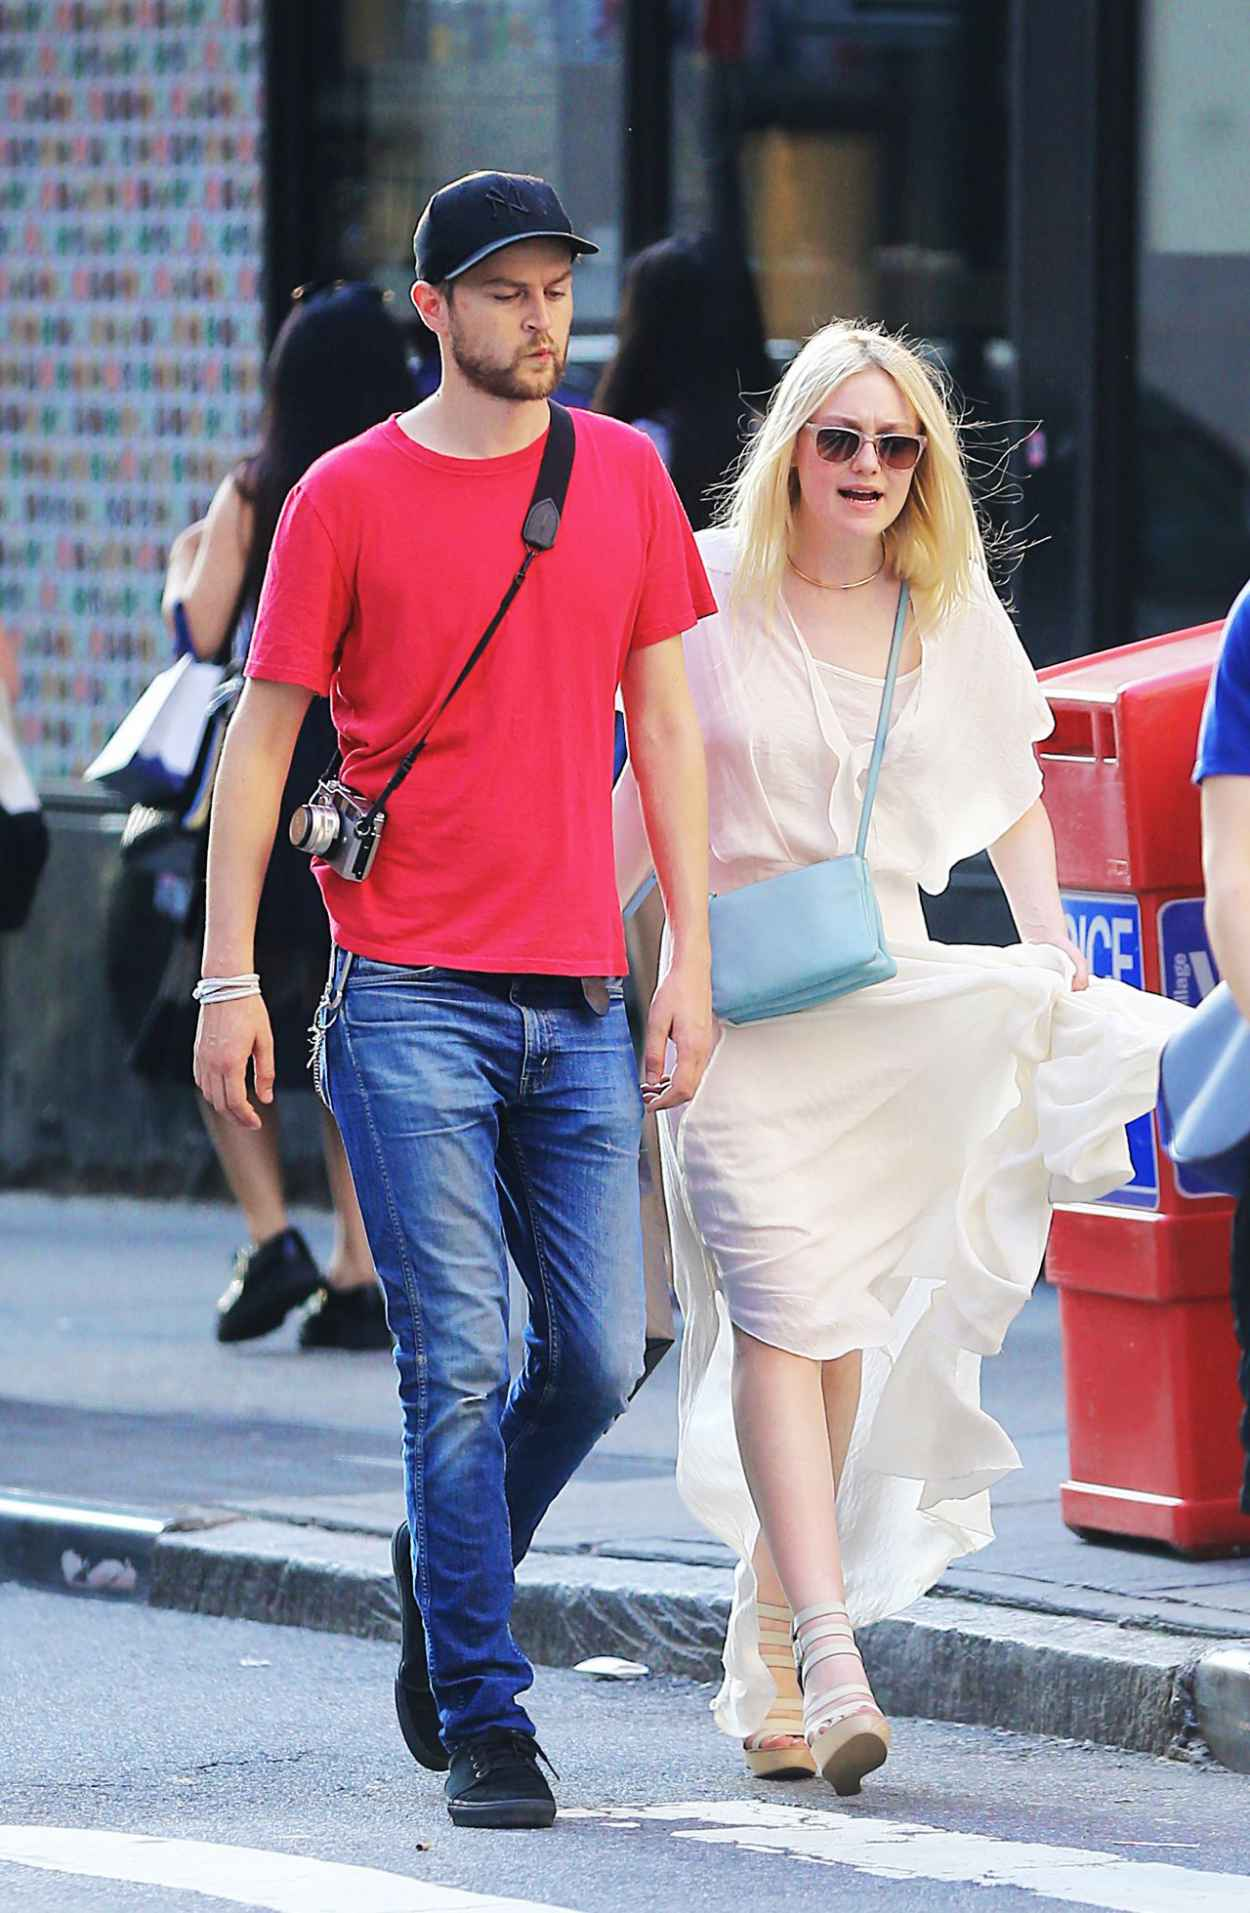 Dakota Fanning and Her Boyfriend Out in NYC - July 2015-1